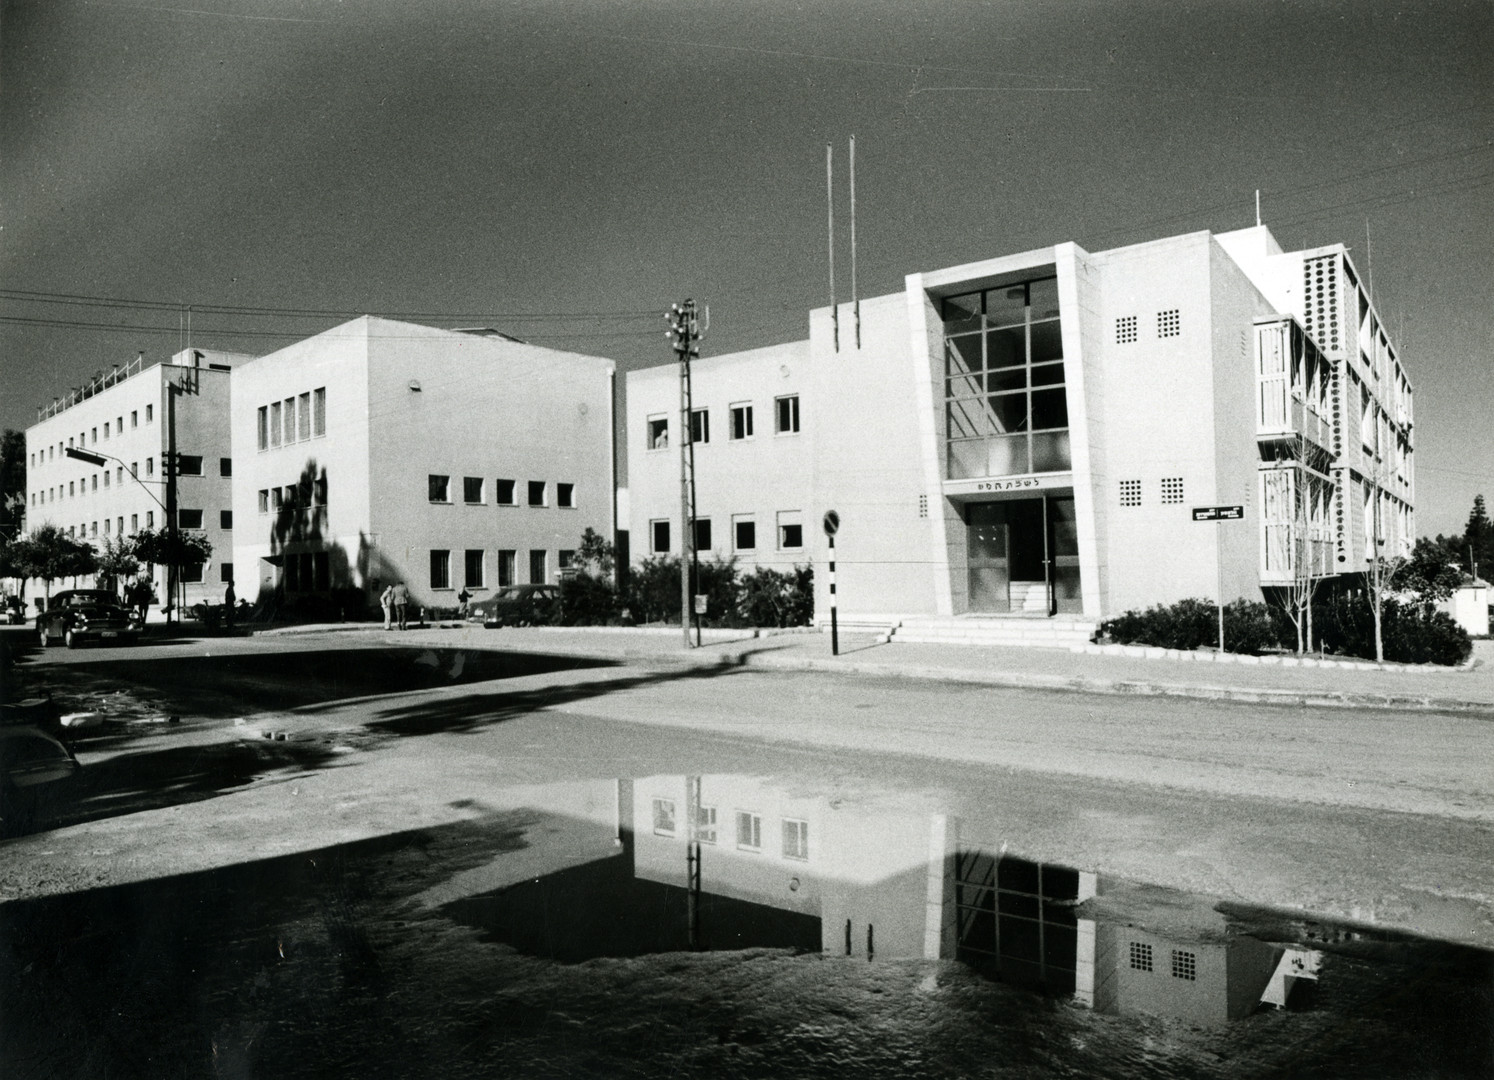 Histadrut House and the Tax Bureau